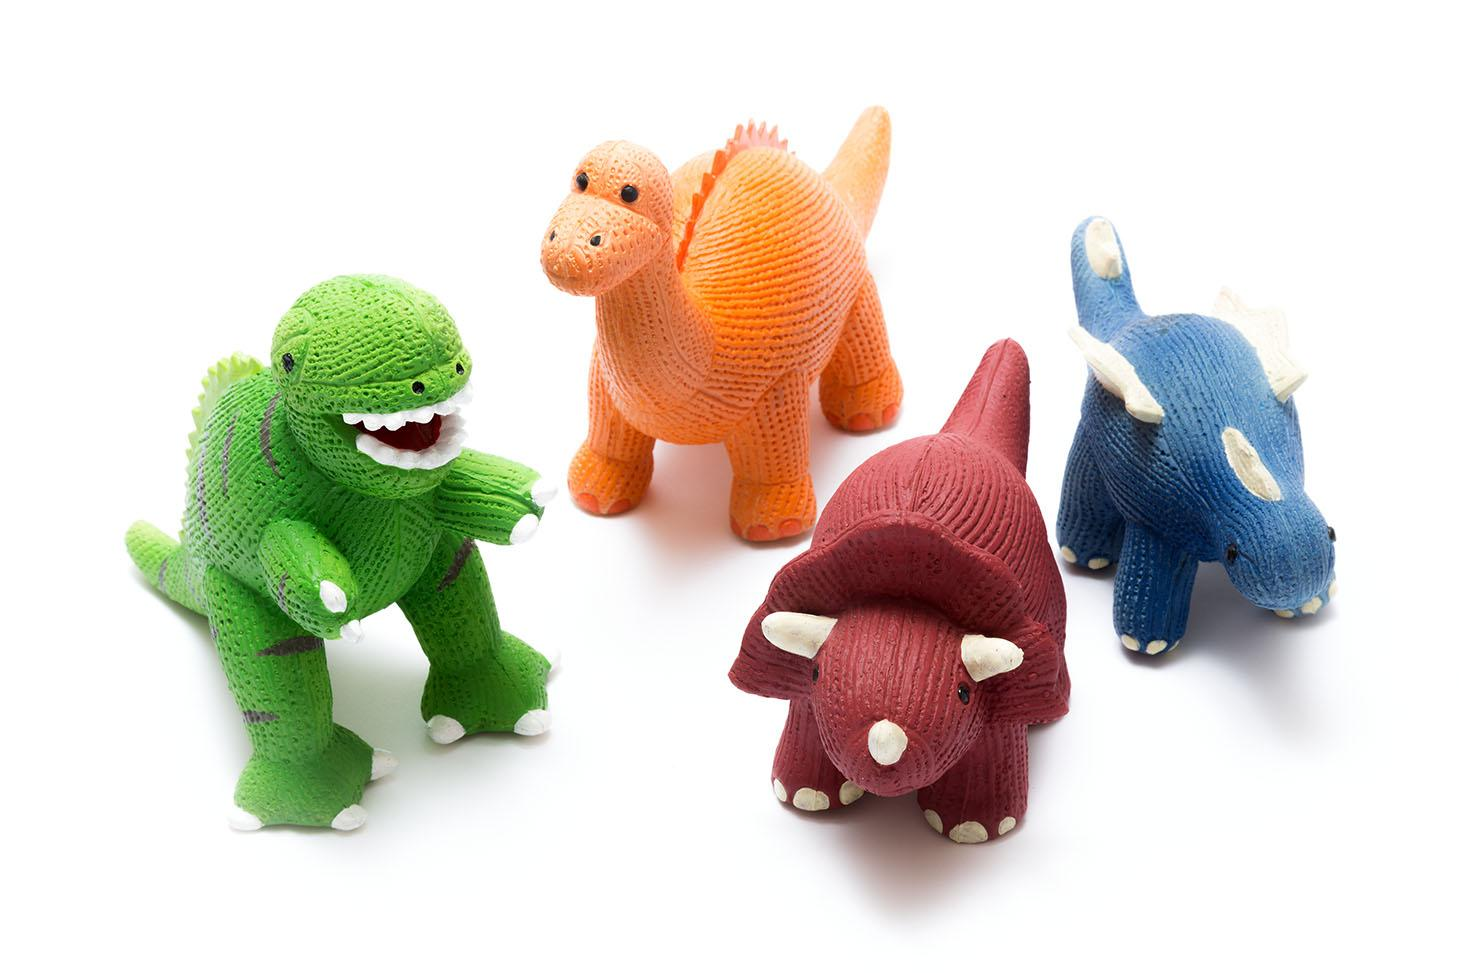 Dinosaurs My First Diplodocus Natural Rubber Dinosaur Toy